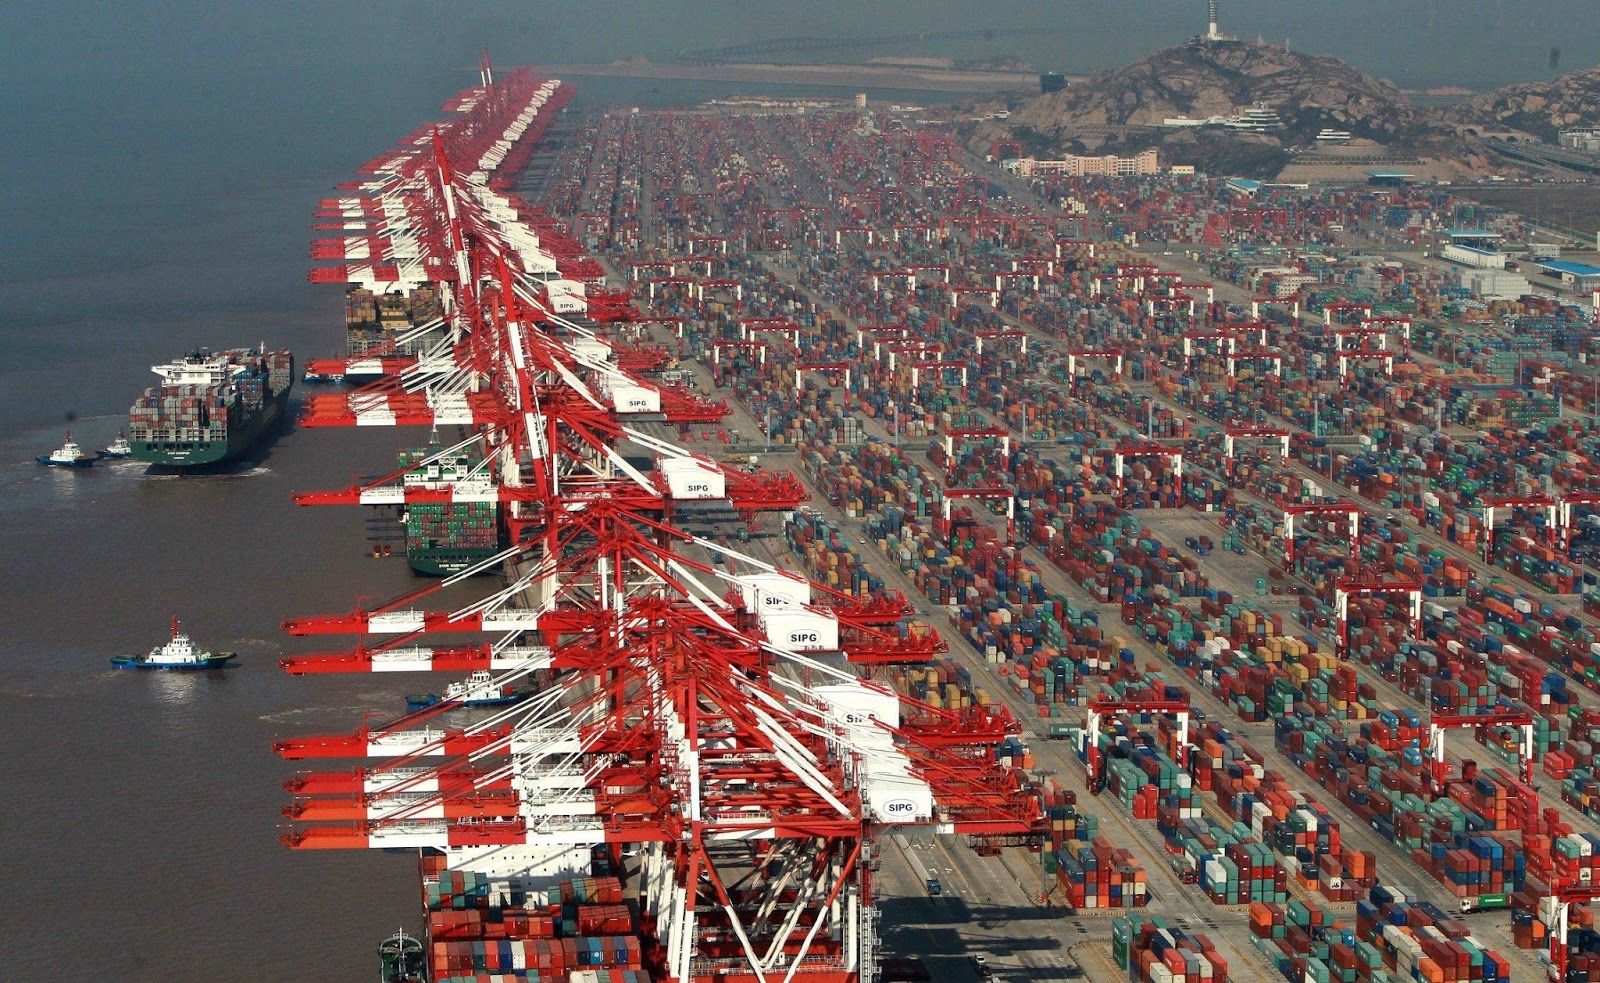 World S Largest Cruise Ship Shanghai Container Terminal Marine Vessel Traffic